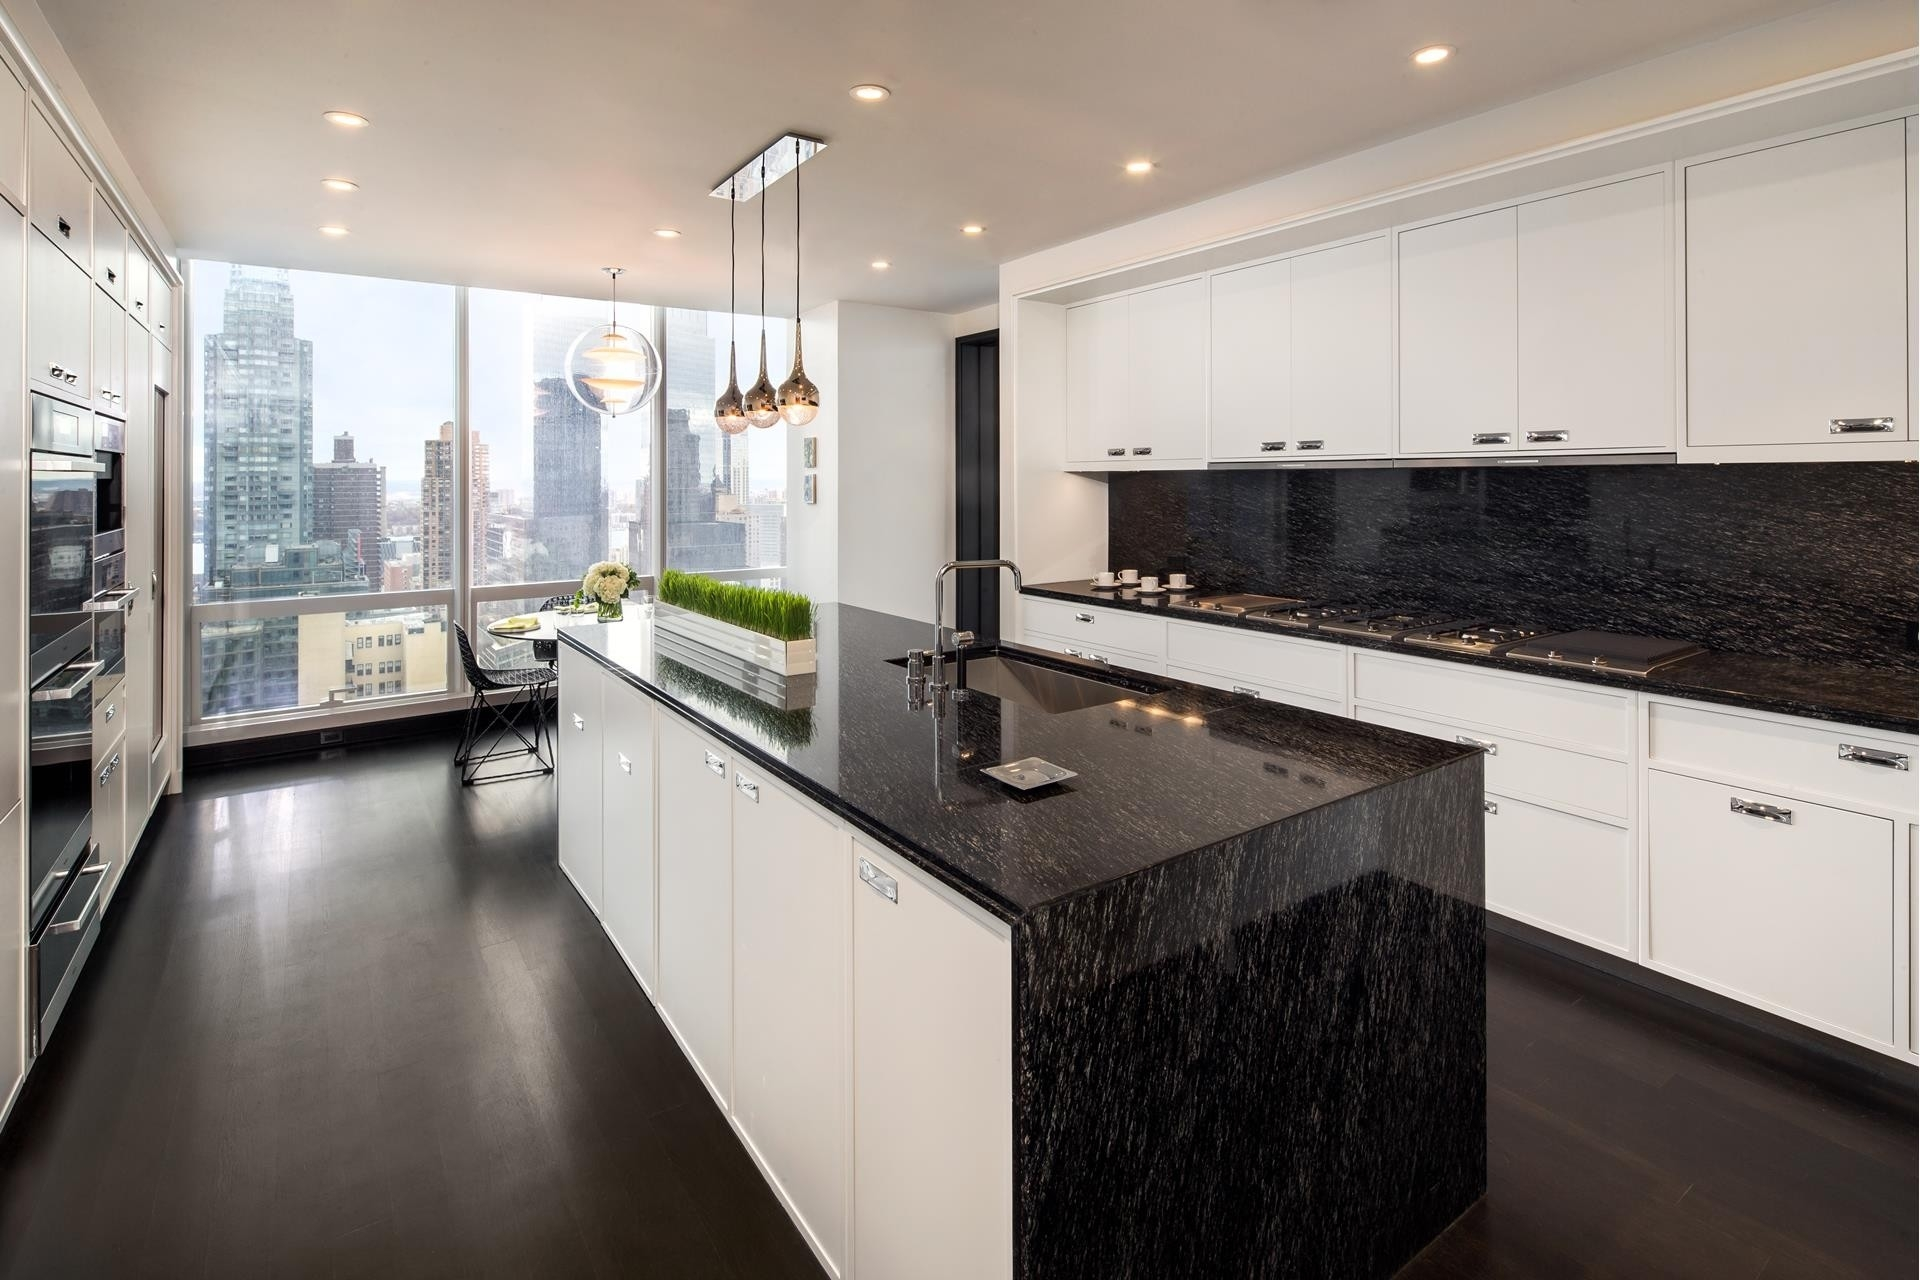 3. Condominiums for Sale at One57, 157 W 57TH ST , 41A Midtown West, New York, NY 10019